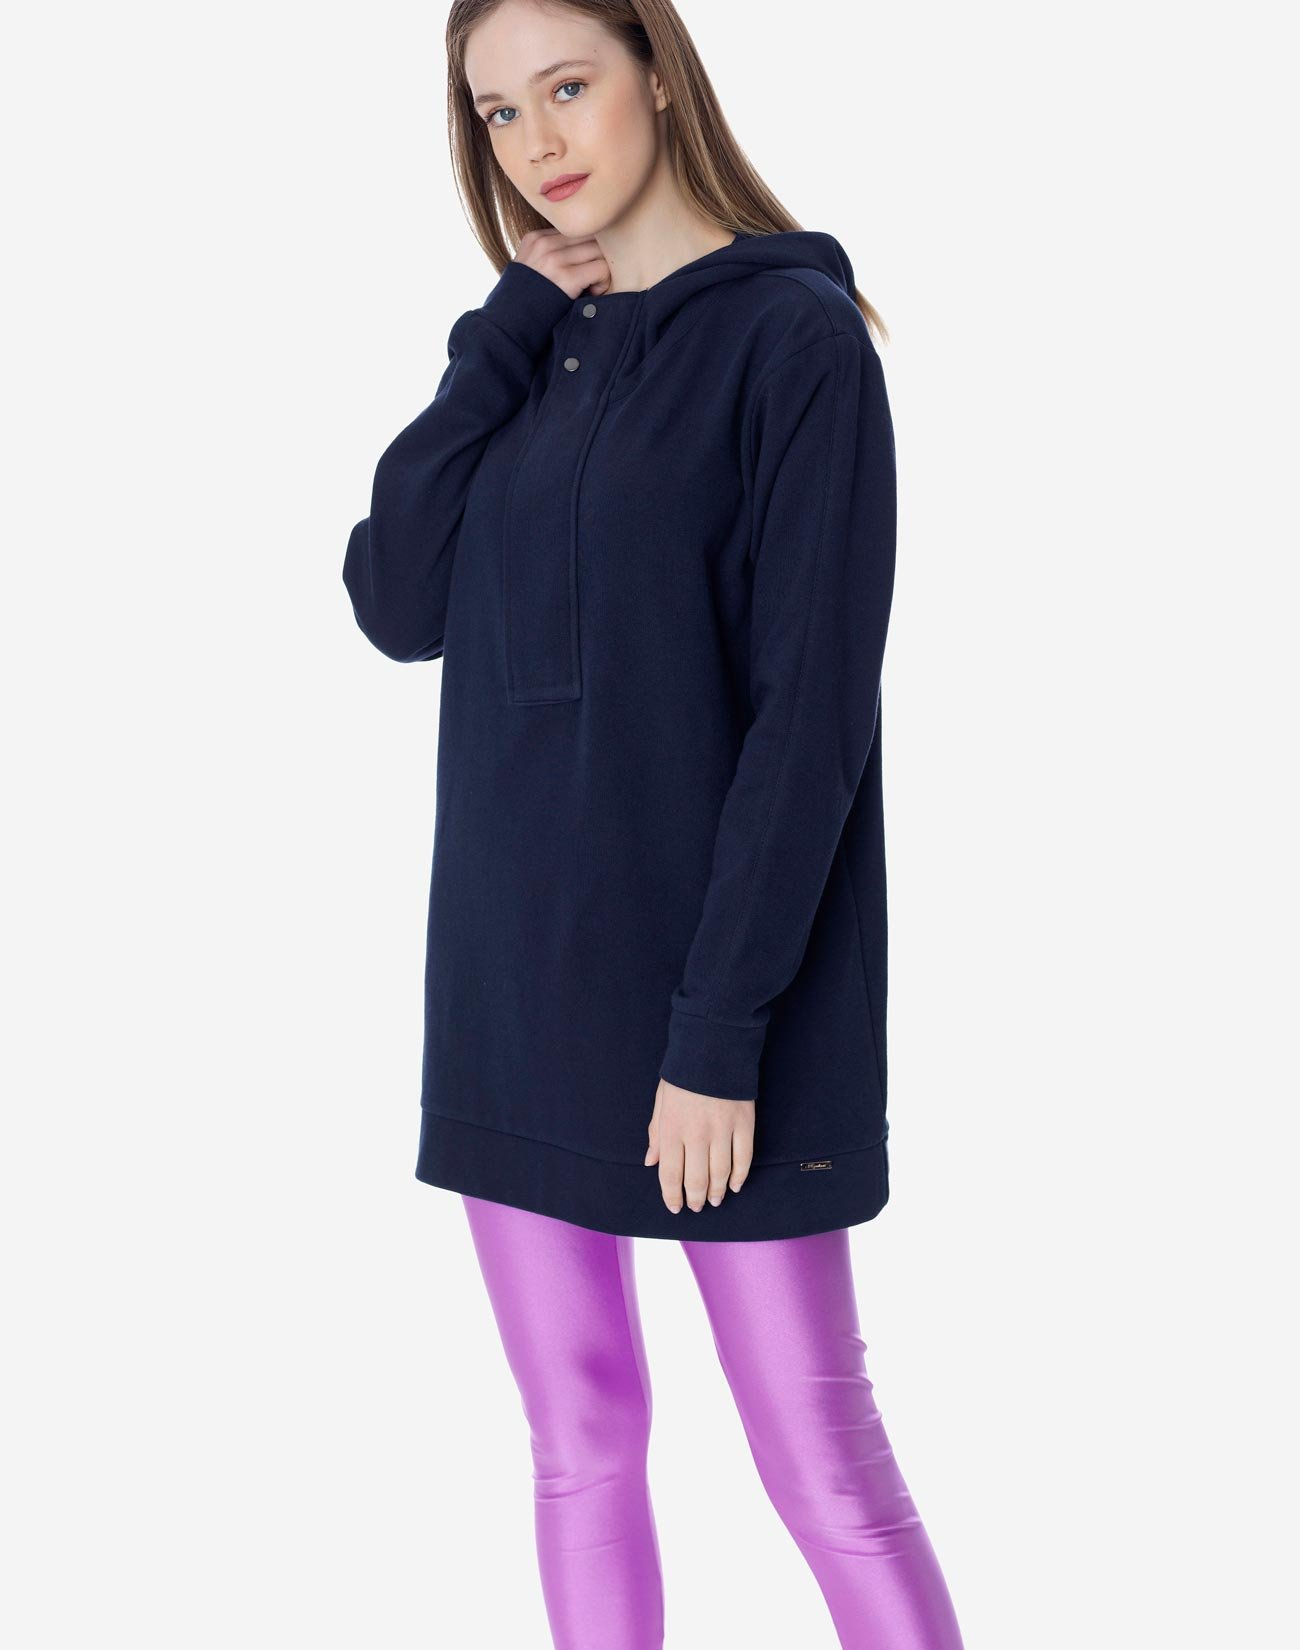 Hoodie with xnap button placket